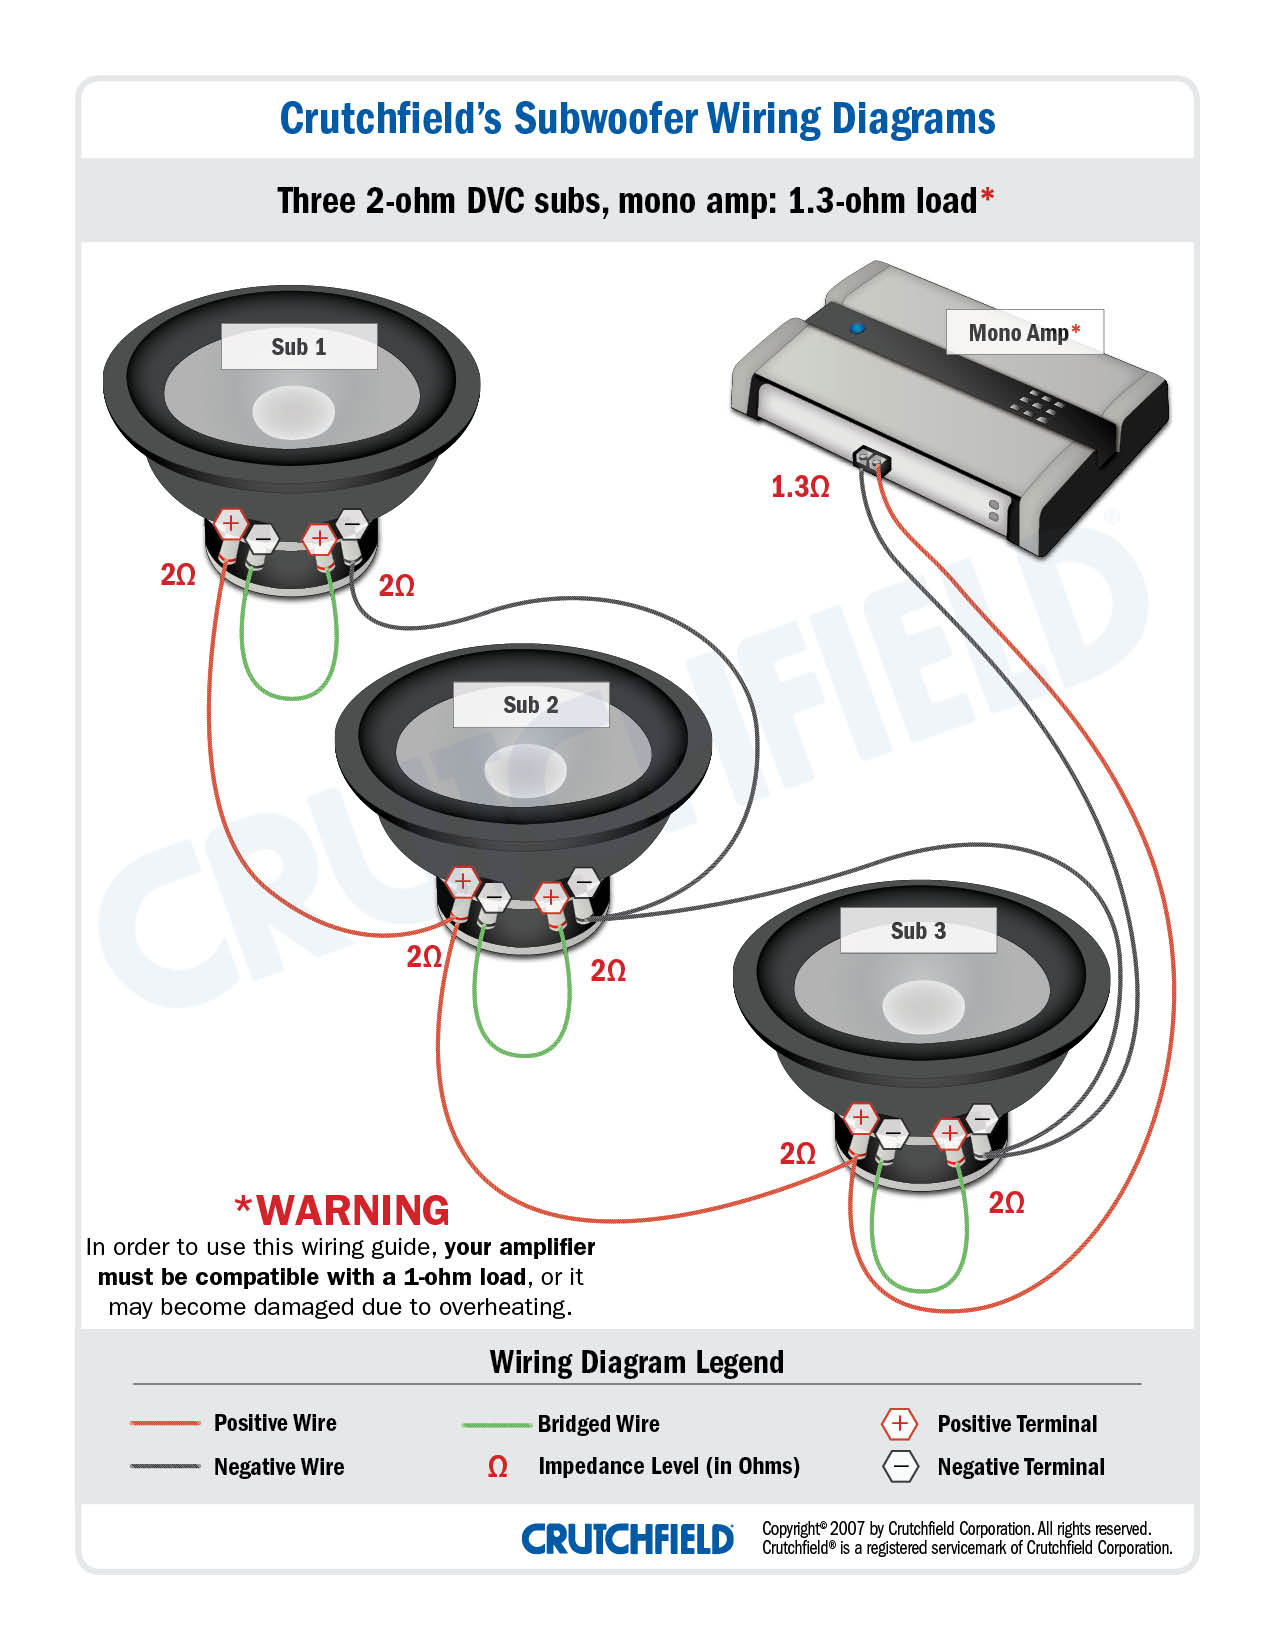 3 DVC 2 ohm mono low imp wiring diagram jl audio 5 channel amp readingrat net jl audio speaker wiring diagram at nearapp.co